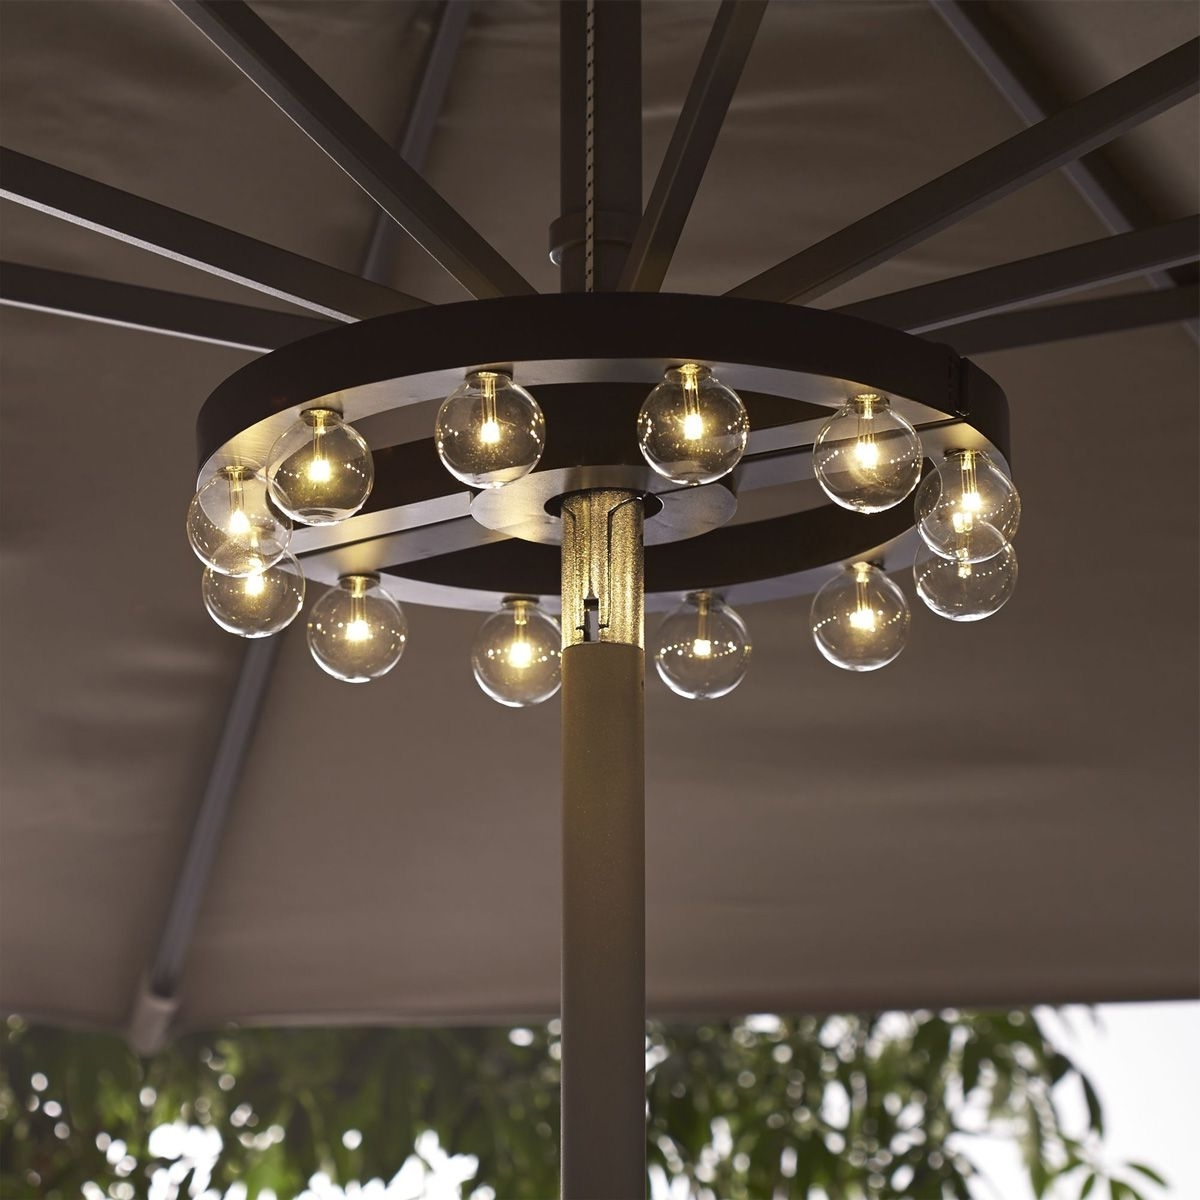 Famous Patio Umbrella Lights Throughout Patio Umbrella Marquee Lights (Gallery 2 of 20)